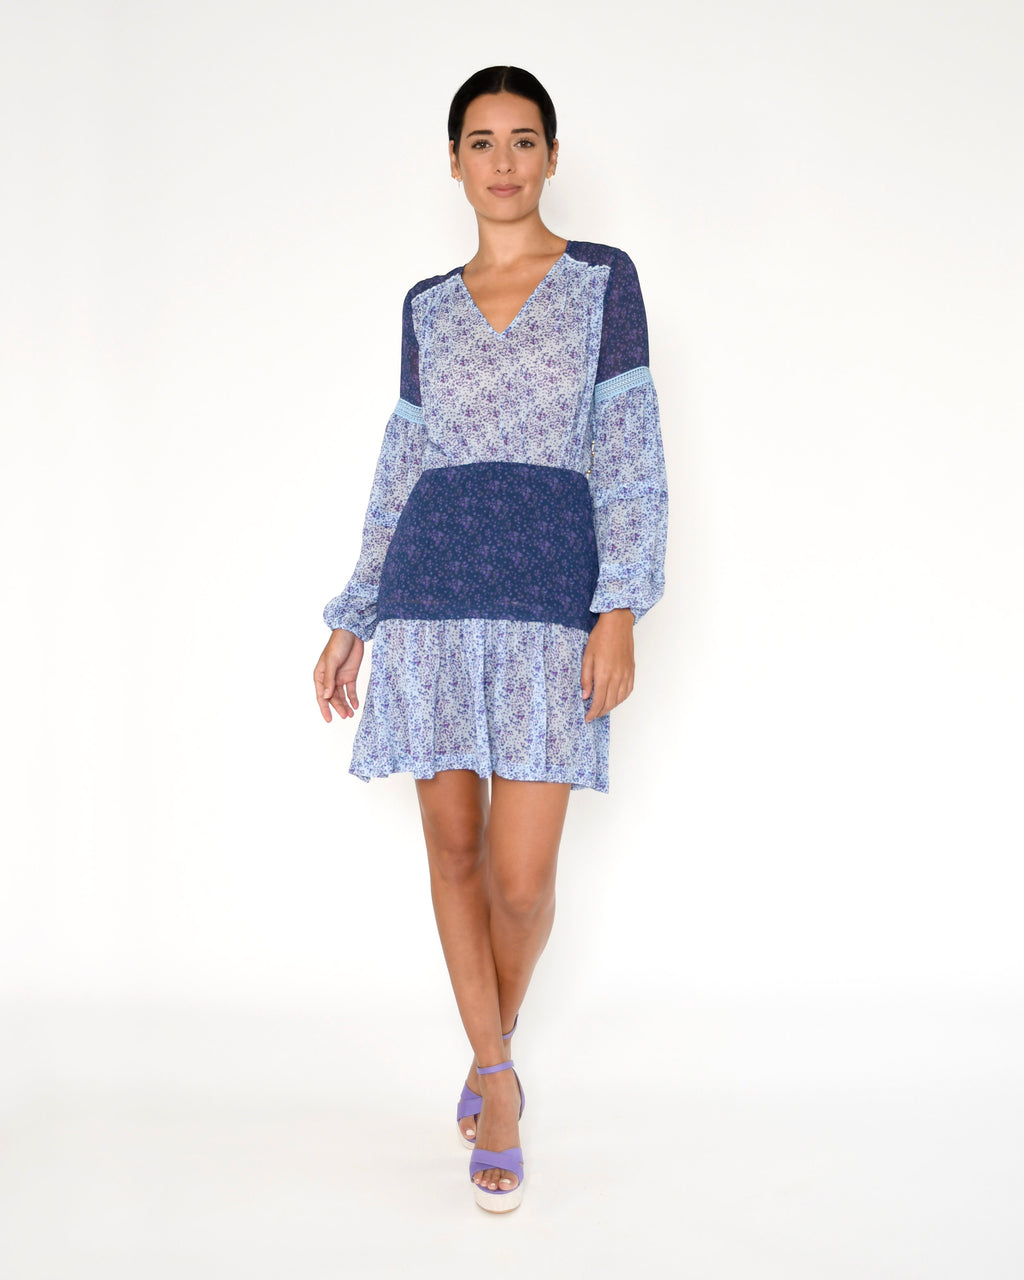 CD18418 - MAMA DITSY MINI DRESS - dresses - short - This mini dress is designed in our vibrant mama ditsy print, featuring delicate flowers in a range of blues. Designed in a billowy fabric, this simple yet stunning dress features long sleeves with lace detailing and gold buttons along the side for closure. Add 1 line break Stylist Tip: Dress down with fashion sneakers or up with heels.